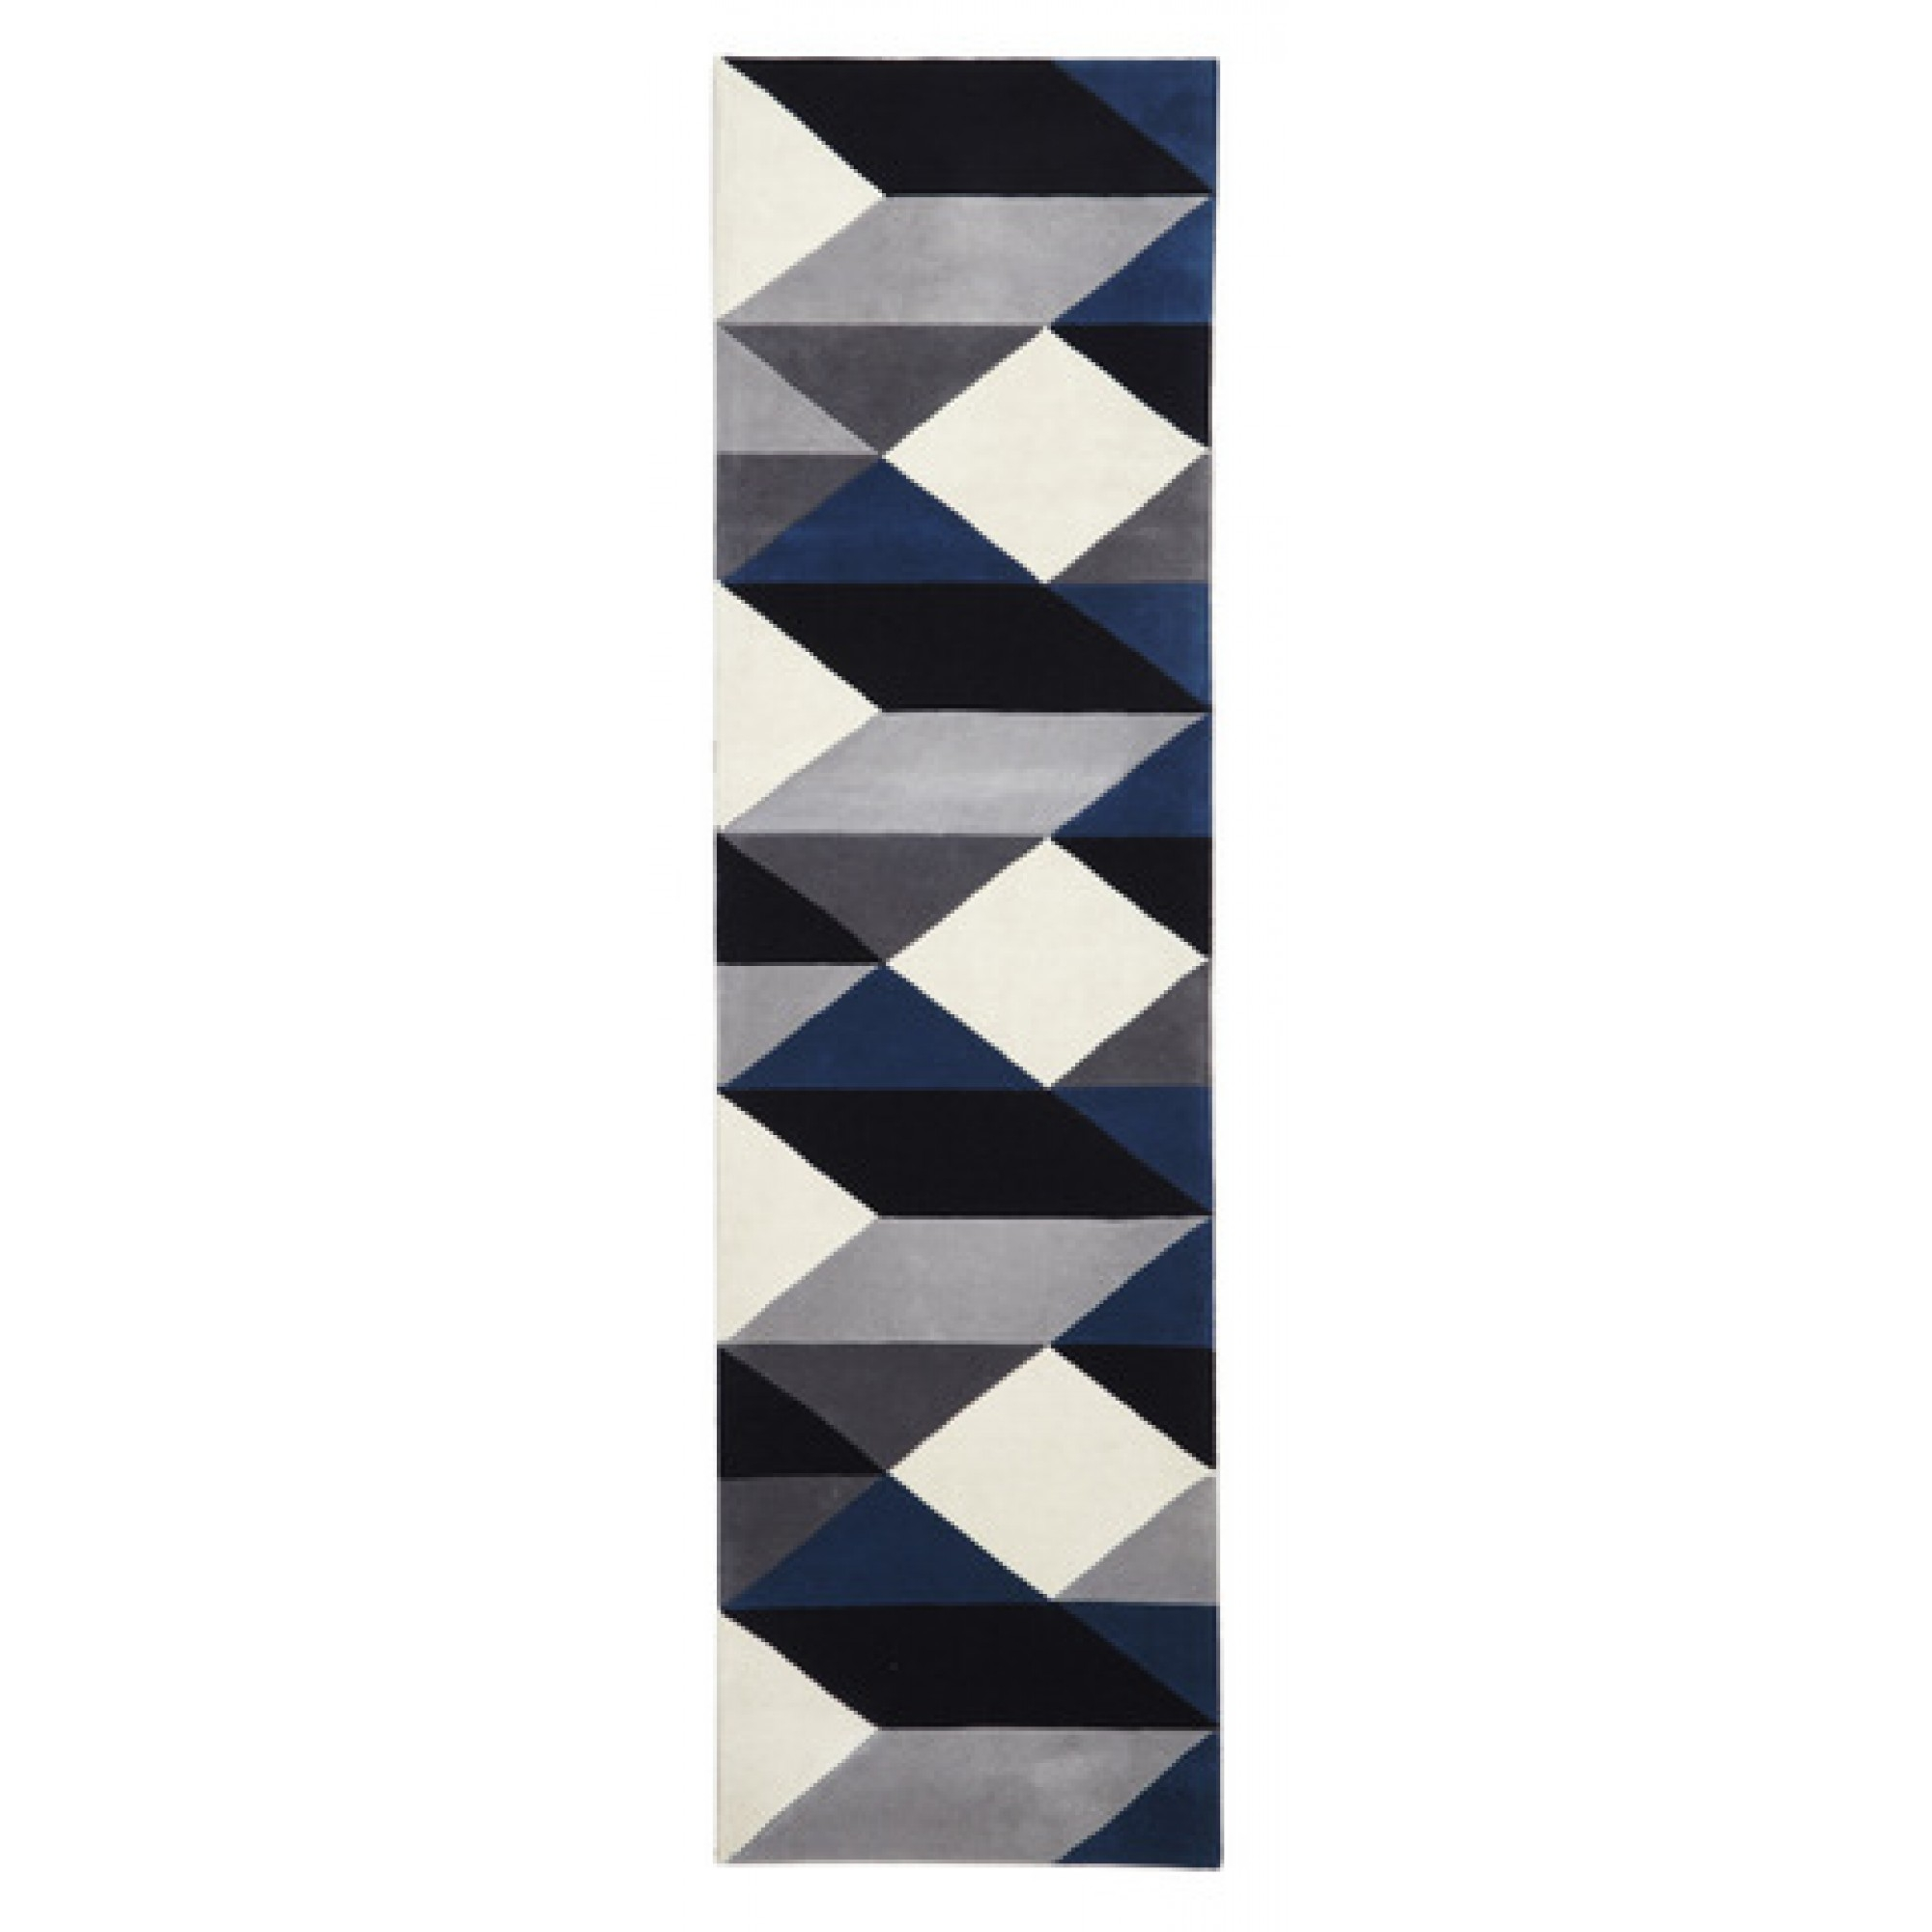 Digital Designer Wool Rug Blue Grey White Free Shipping Australia Pertaining To Wool Hall Runners (Image 2 of 15)